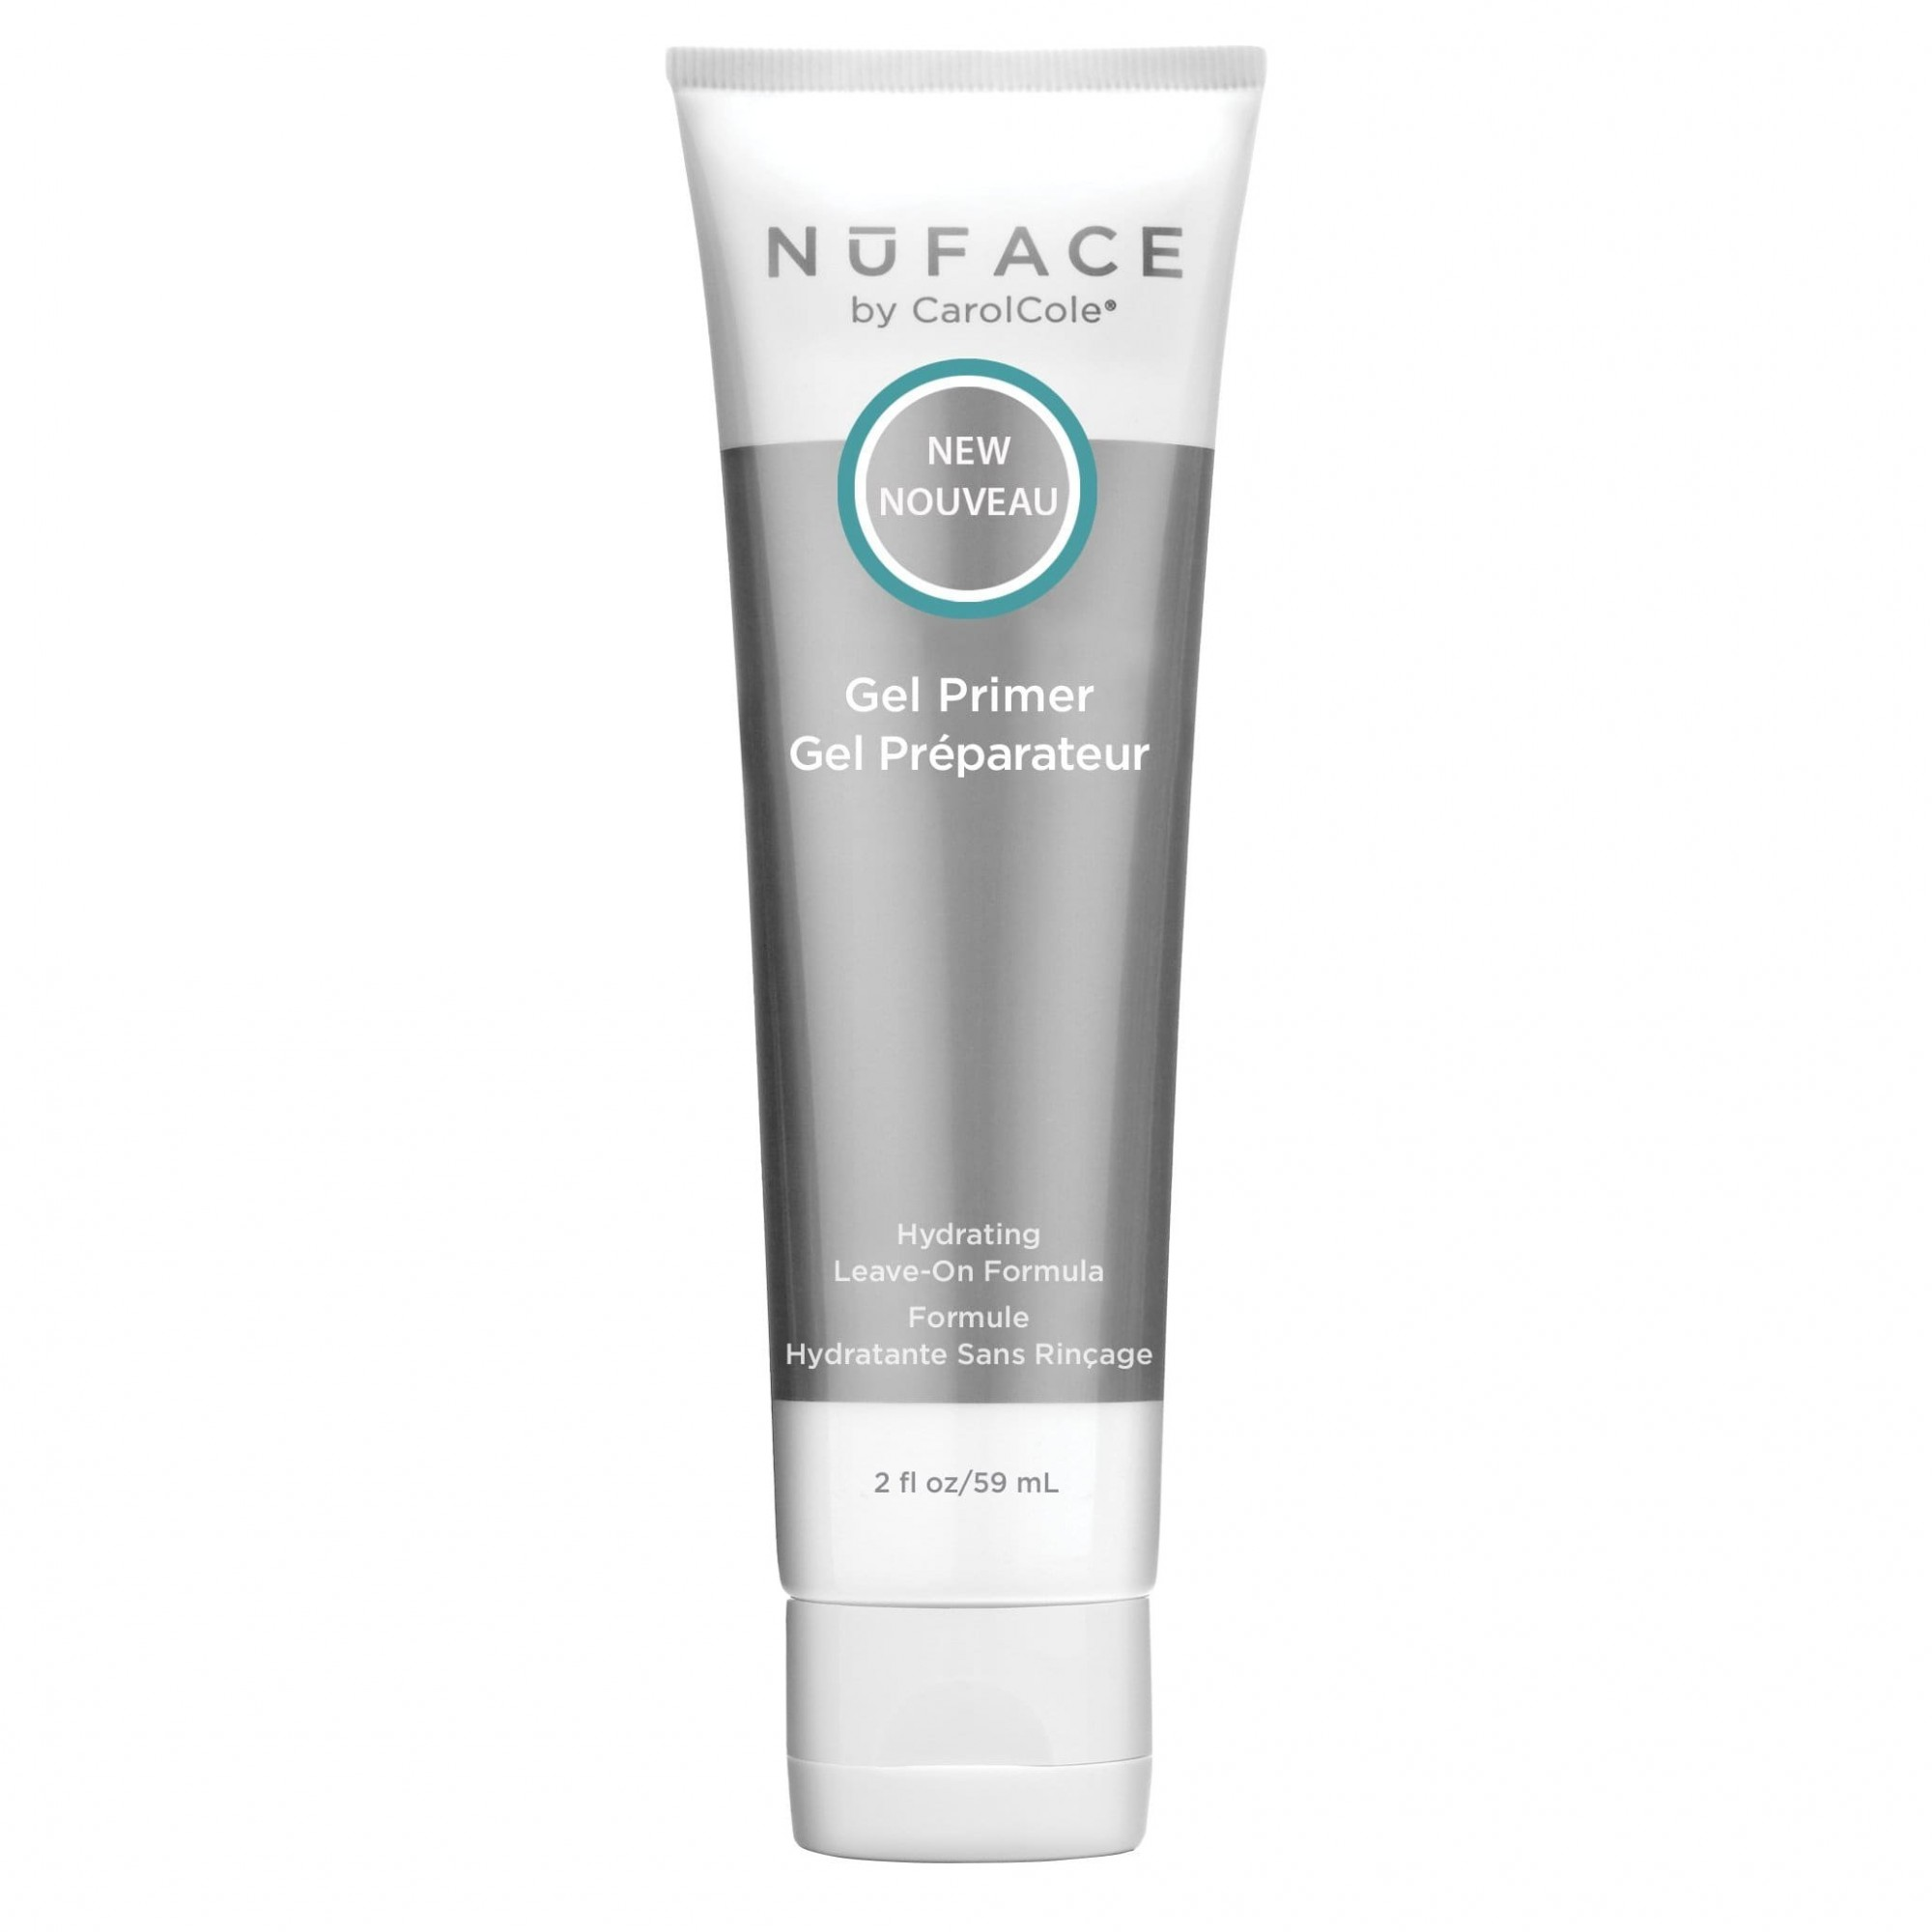 Nuface Hydrating Leave-On Gel Primer 59 mL